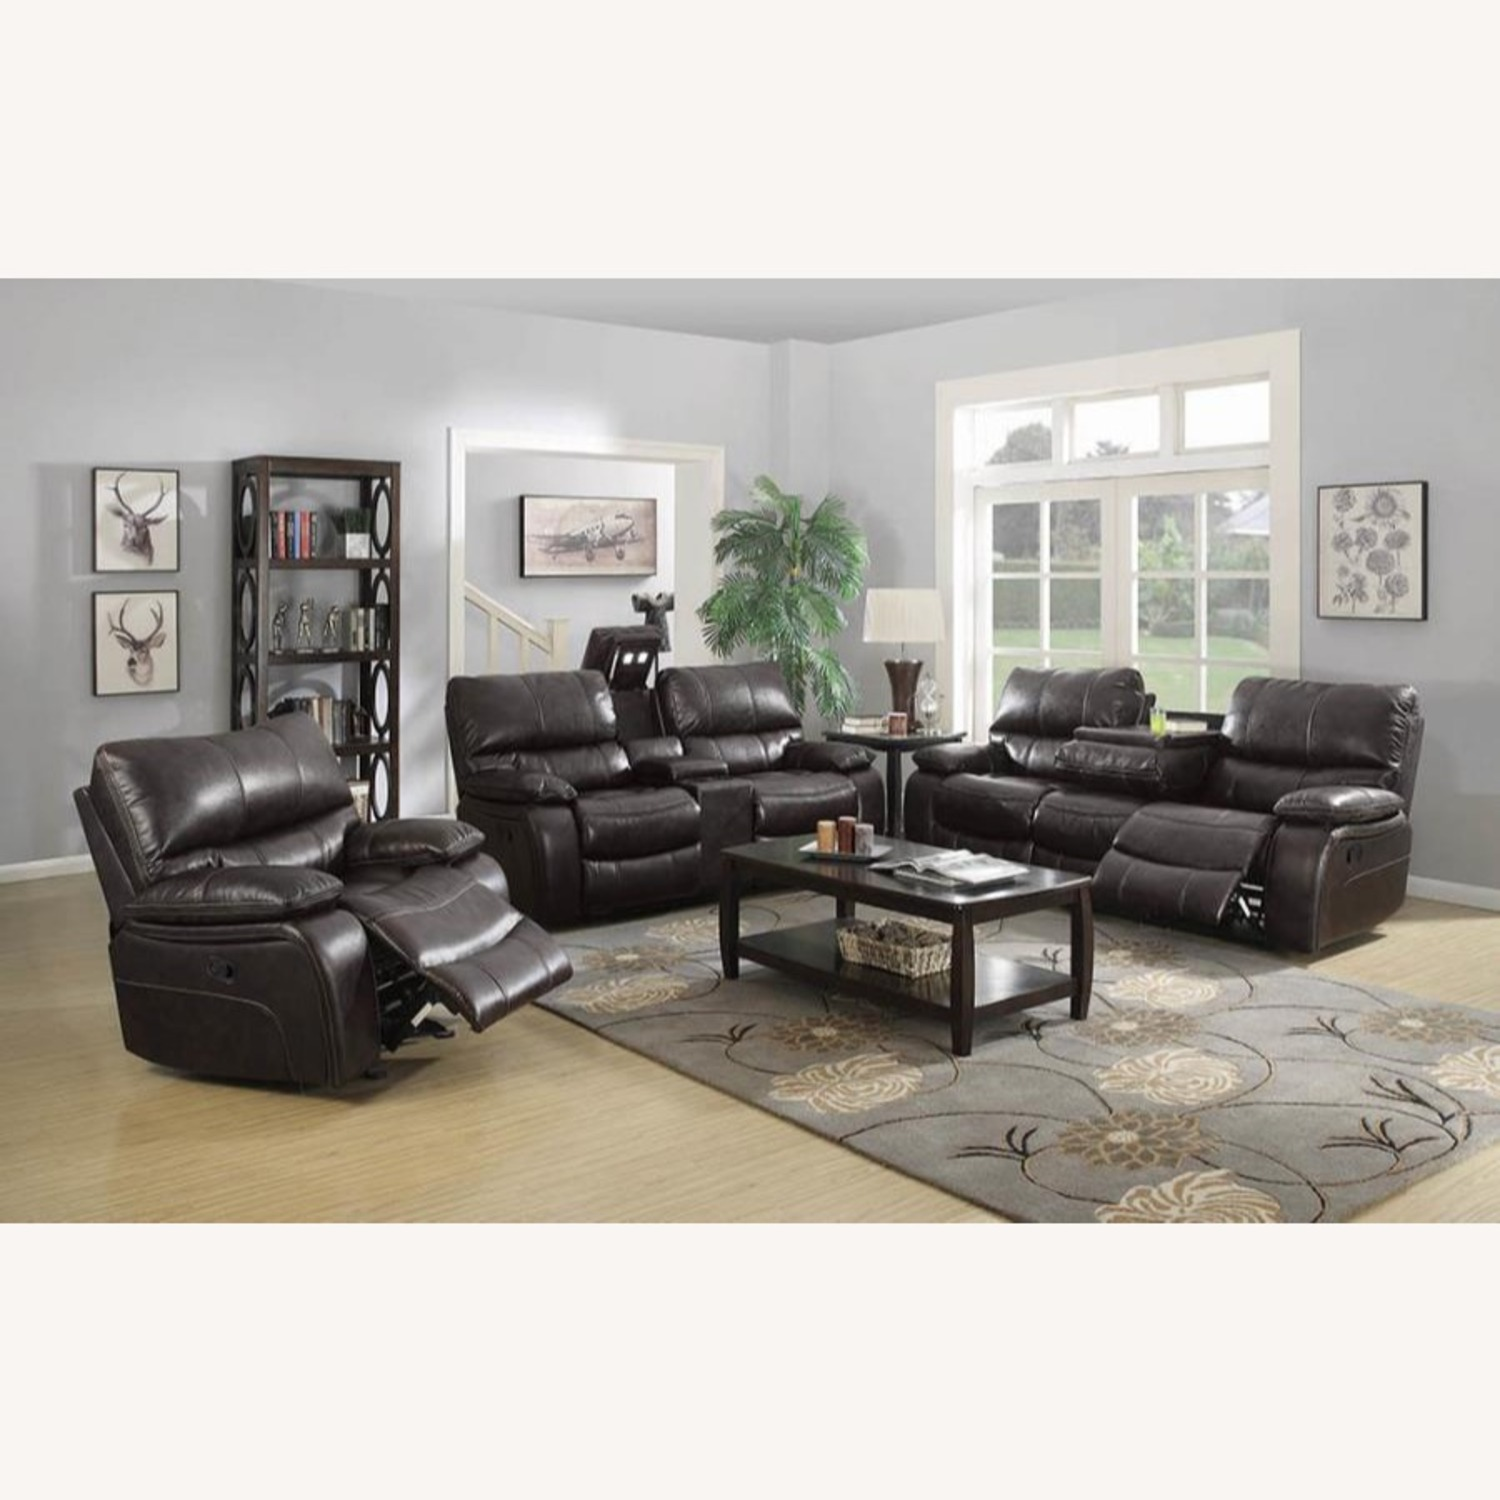 Glider Recliner W/ Scooped Seating In Dark Brown - image-3